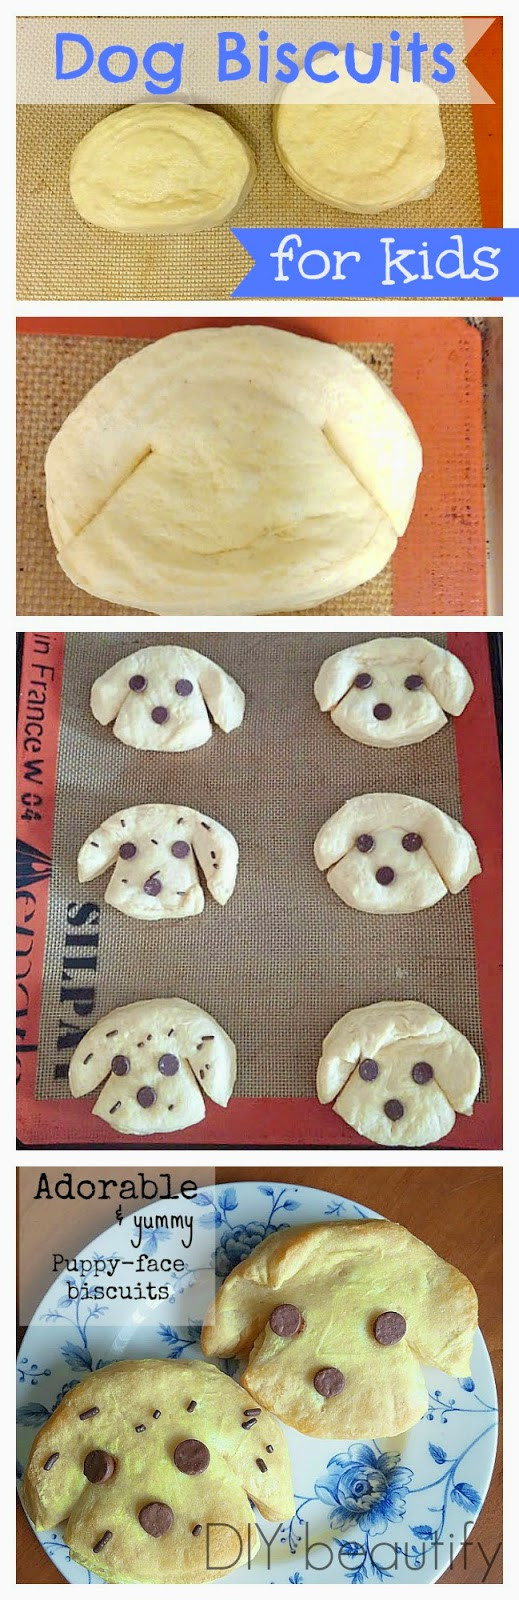 puppy biscuits with chocolate chip faces